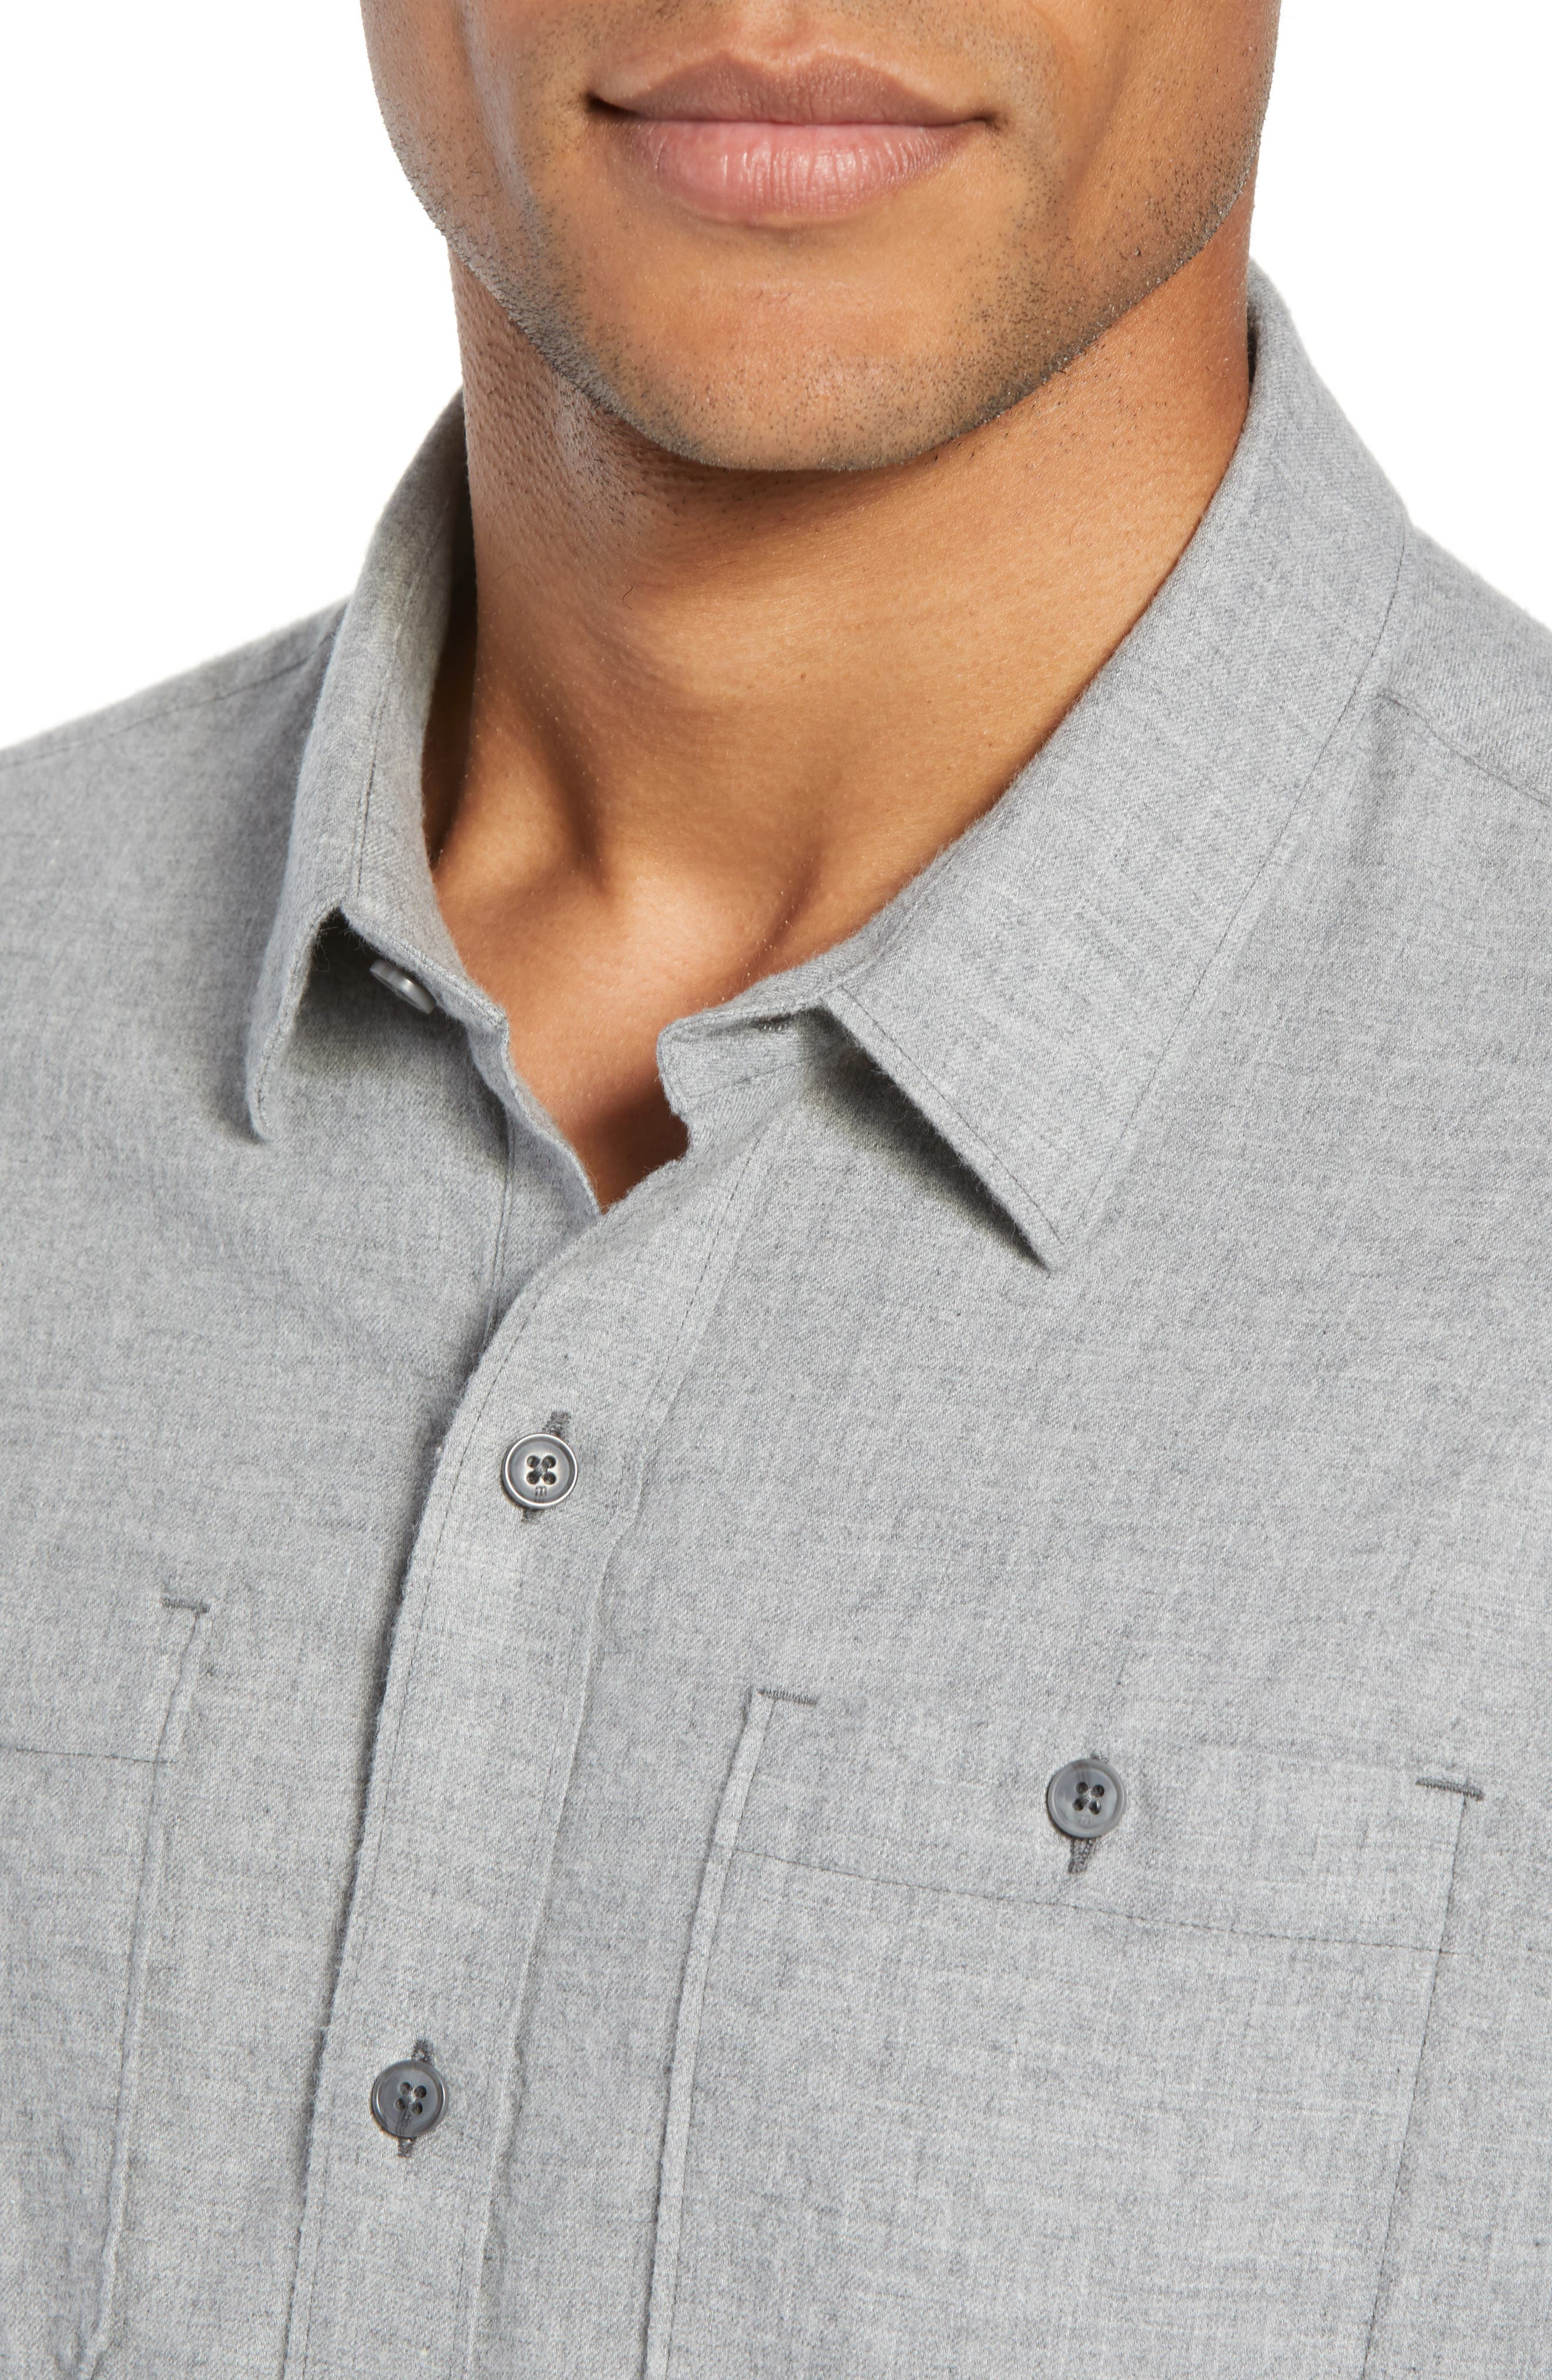 Hefe Regular Fit Flannel Sport Shirt,                             Alternate thumbnail 2, color,                             GREY QUITE SHADE